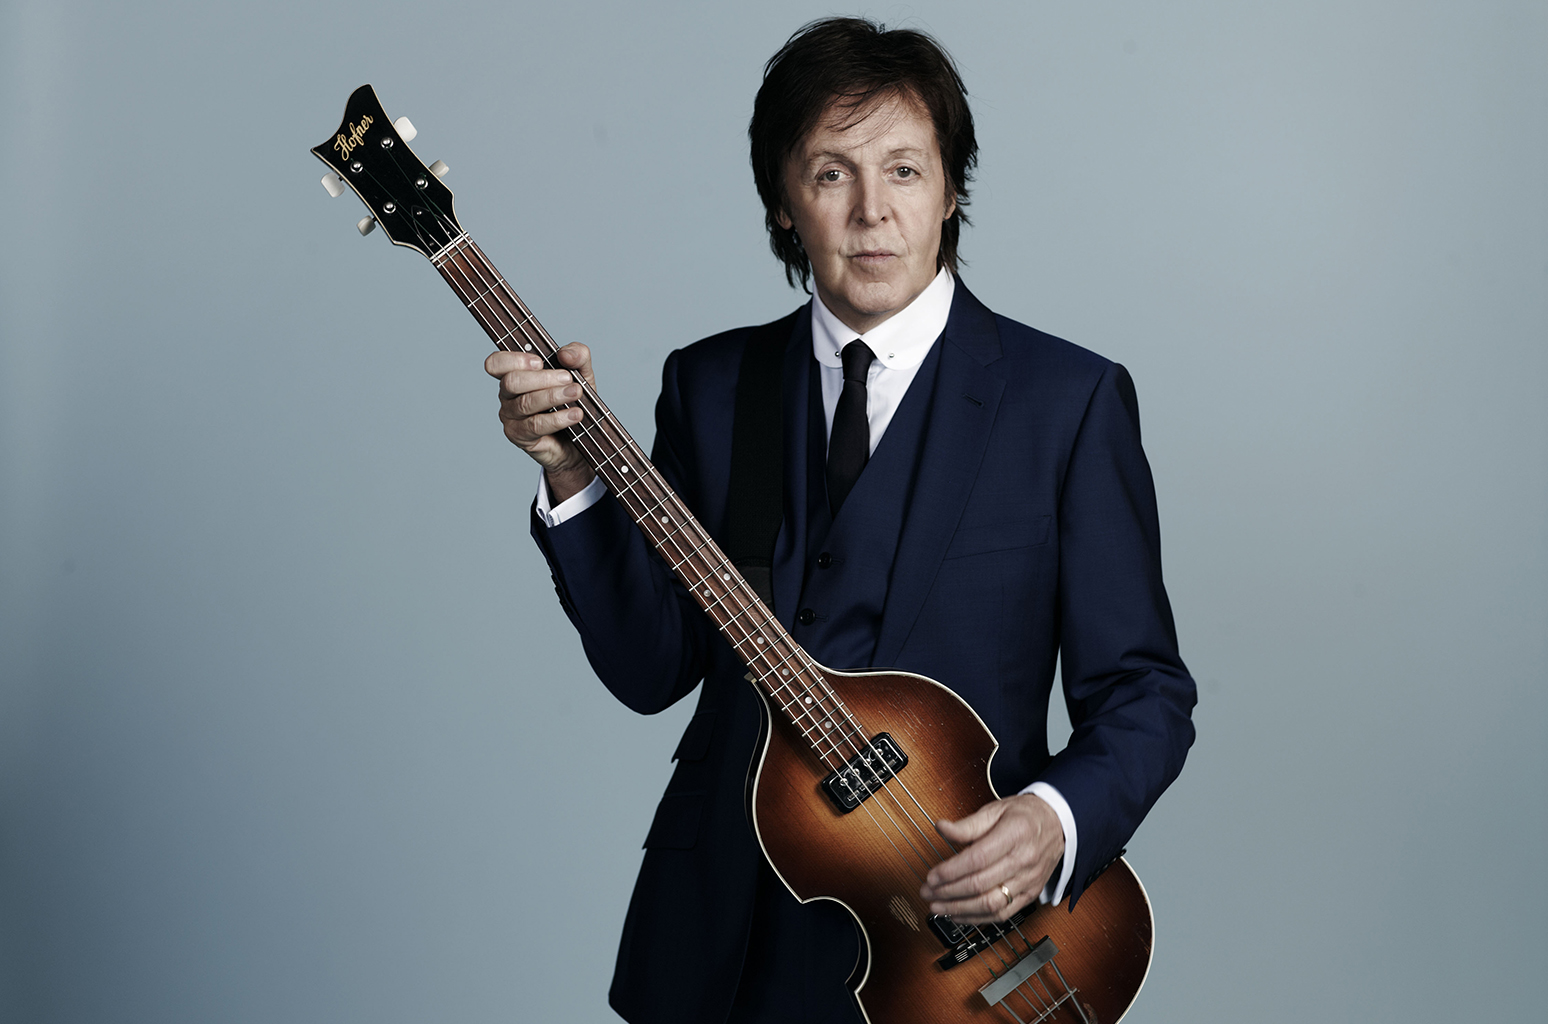 Get Enough: Escucha acá el nuevo single de Paul McCartney